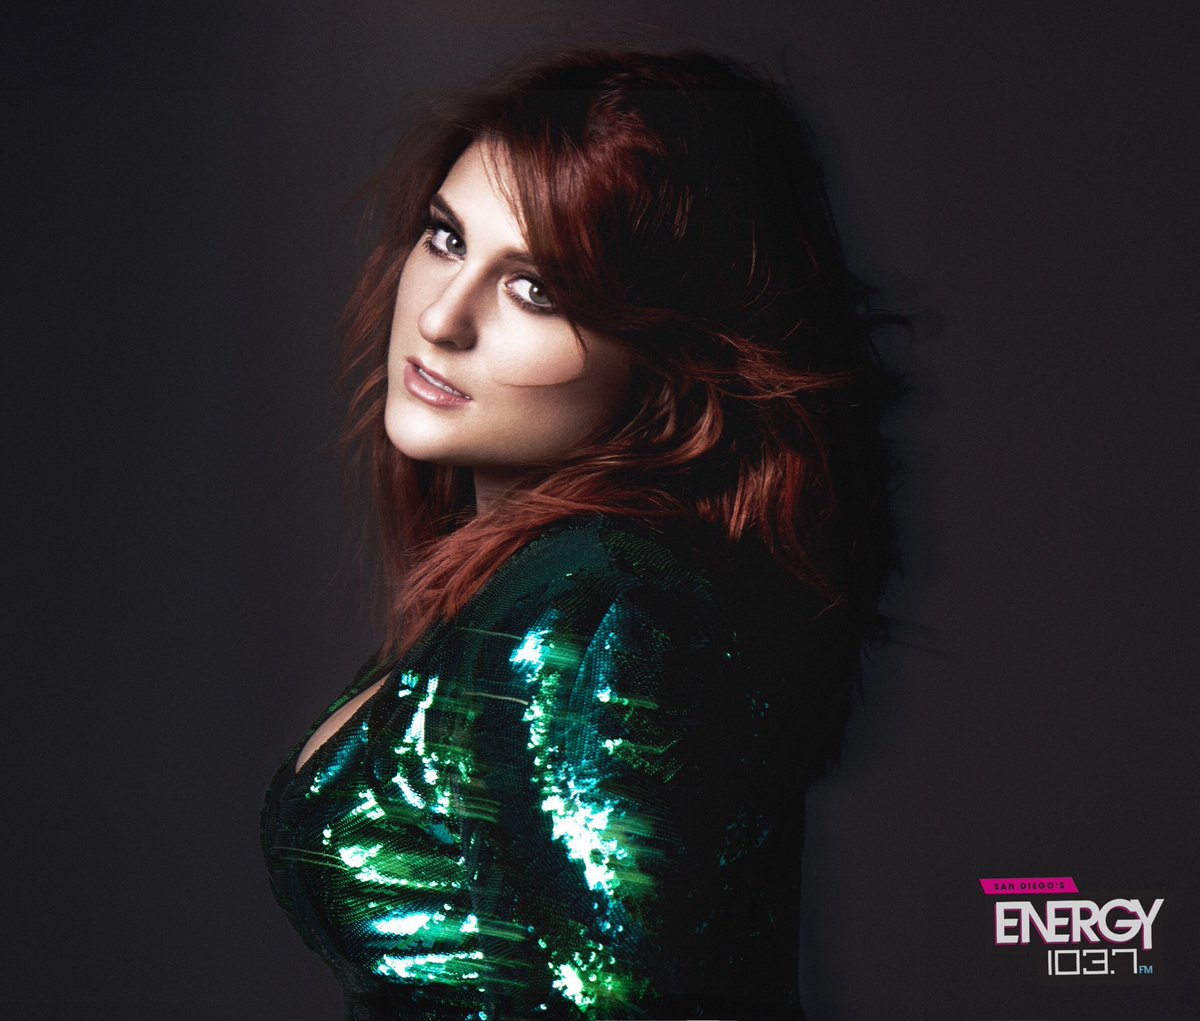 #theajshow gonna premiere a new @Meghan_Trainor track tmrw at 7:05am.  Don't miss this